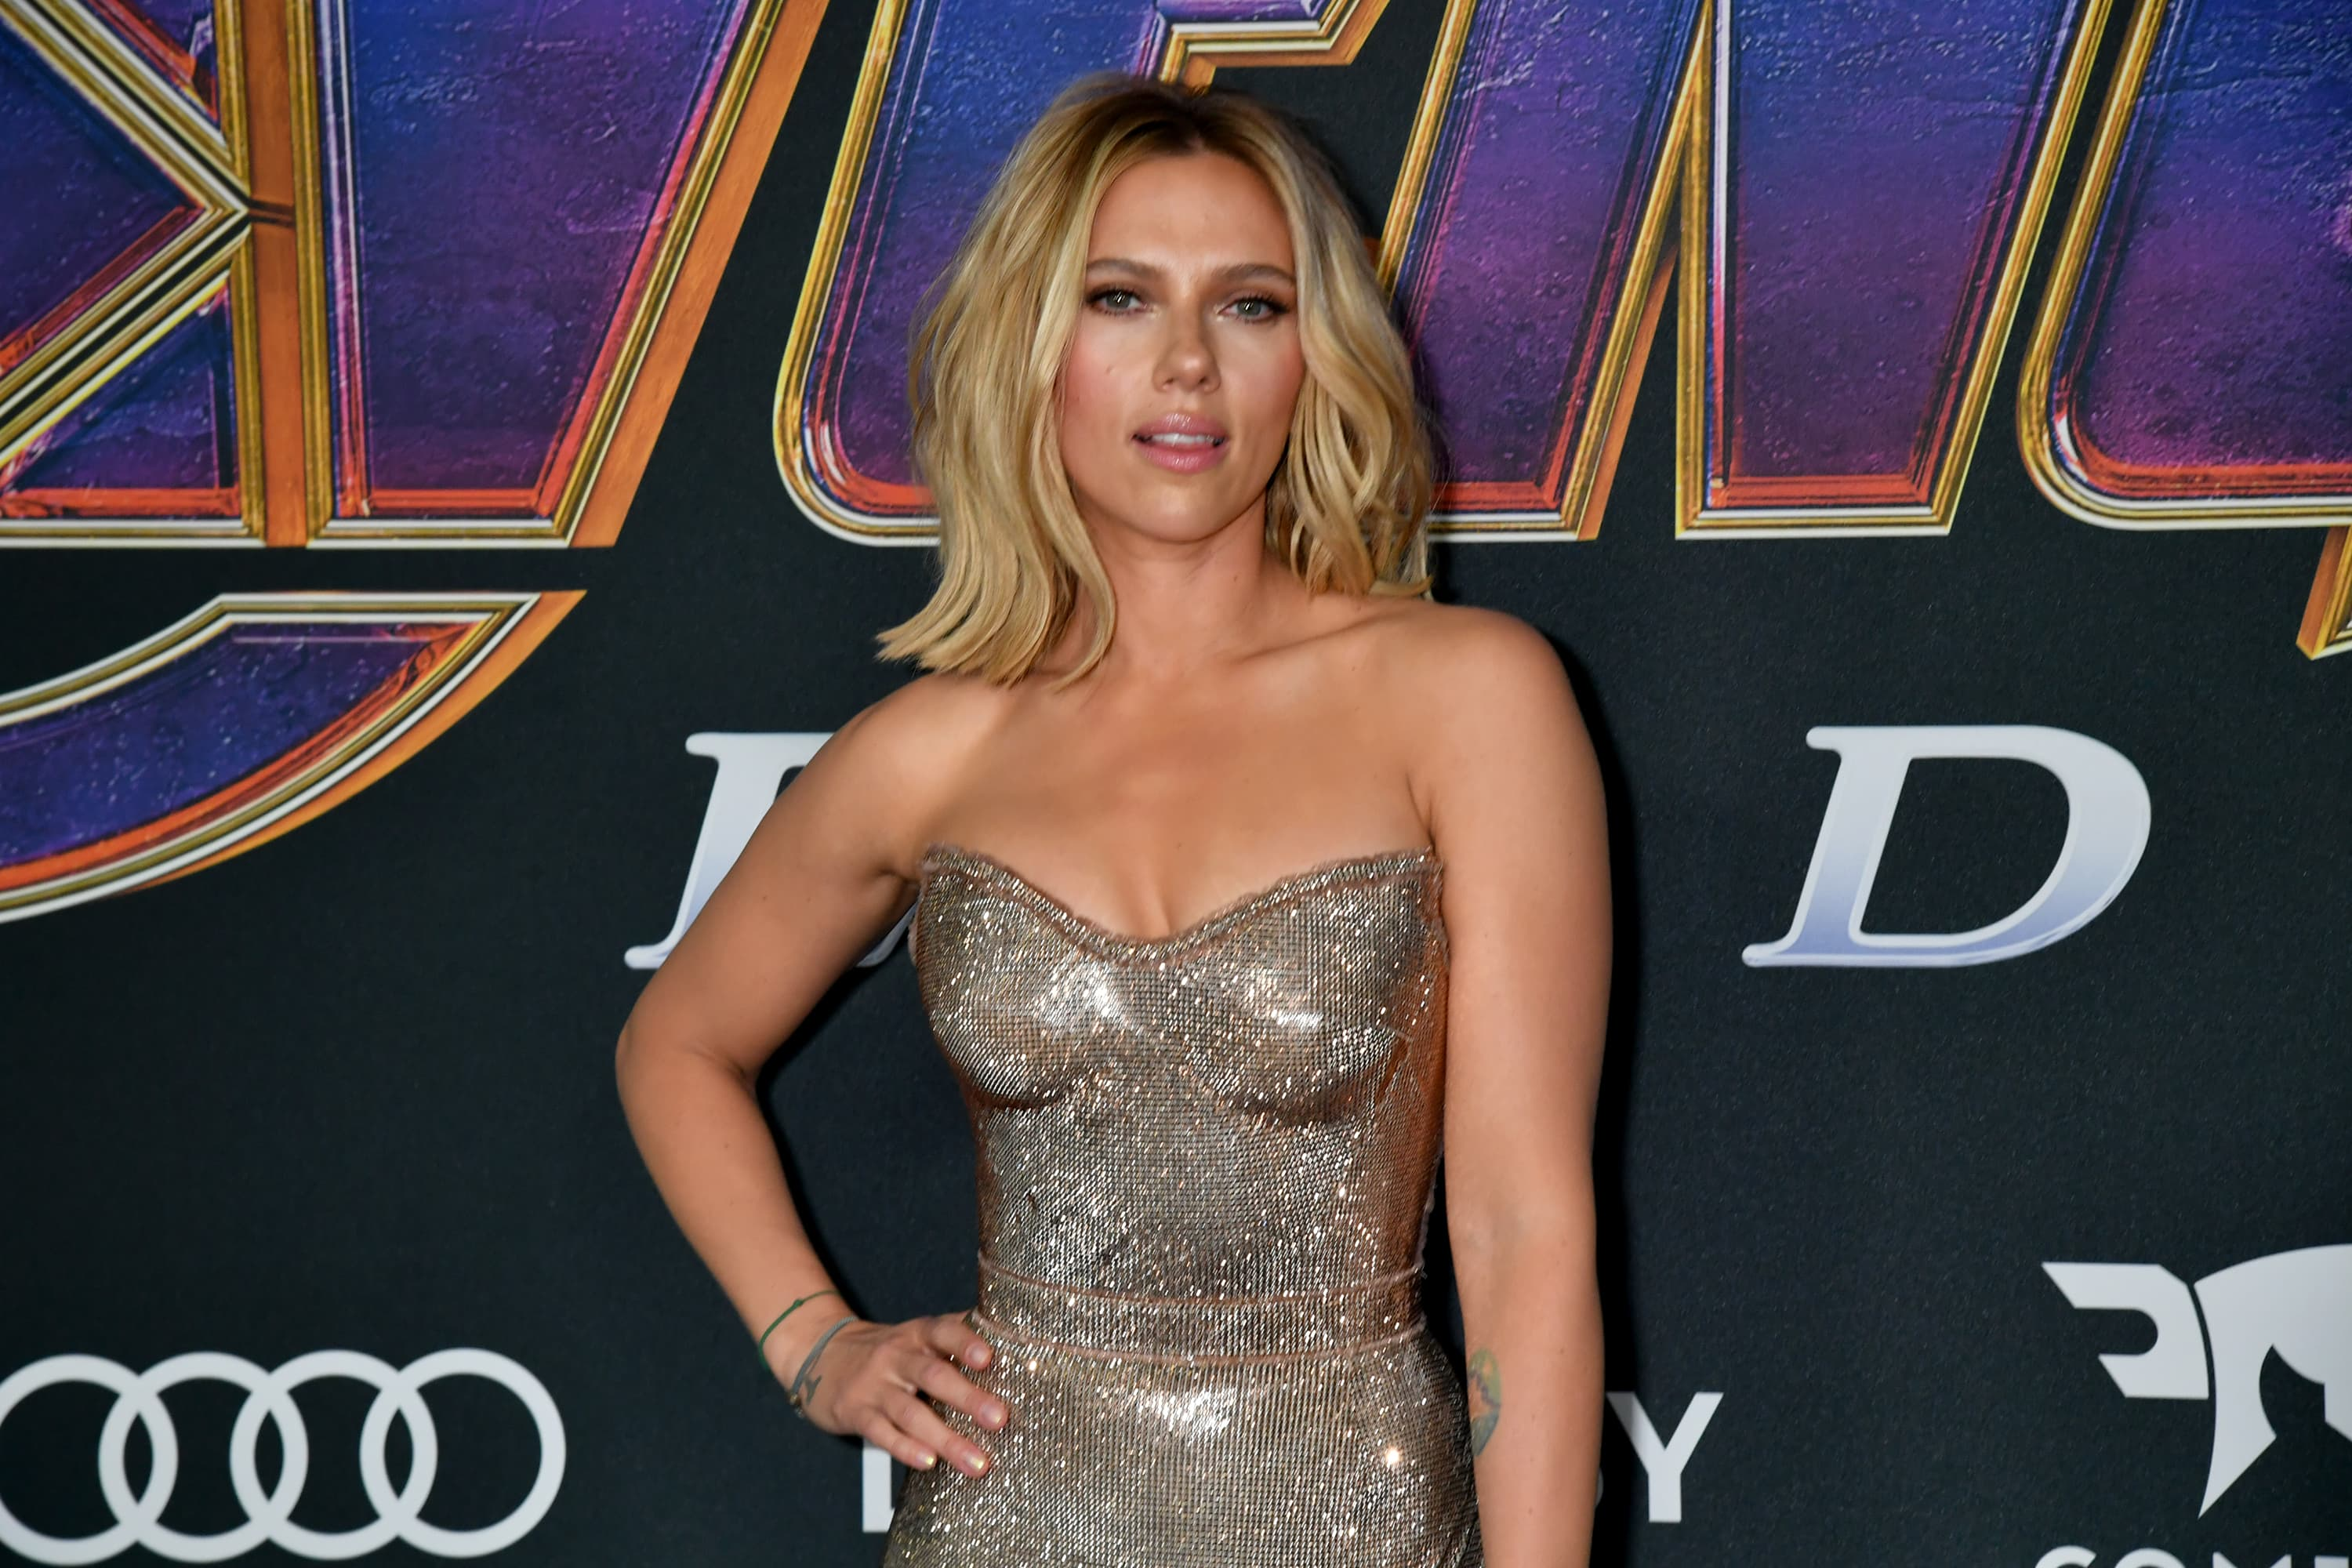 The 10 top-earning actresses made almost $300 million less than their male peers this year